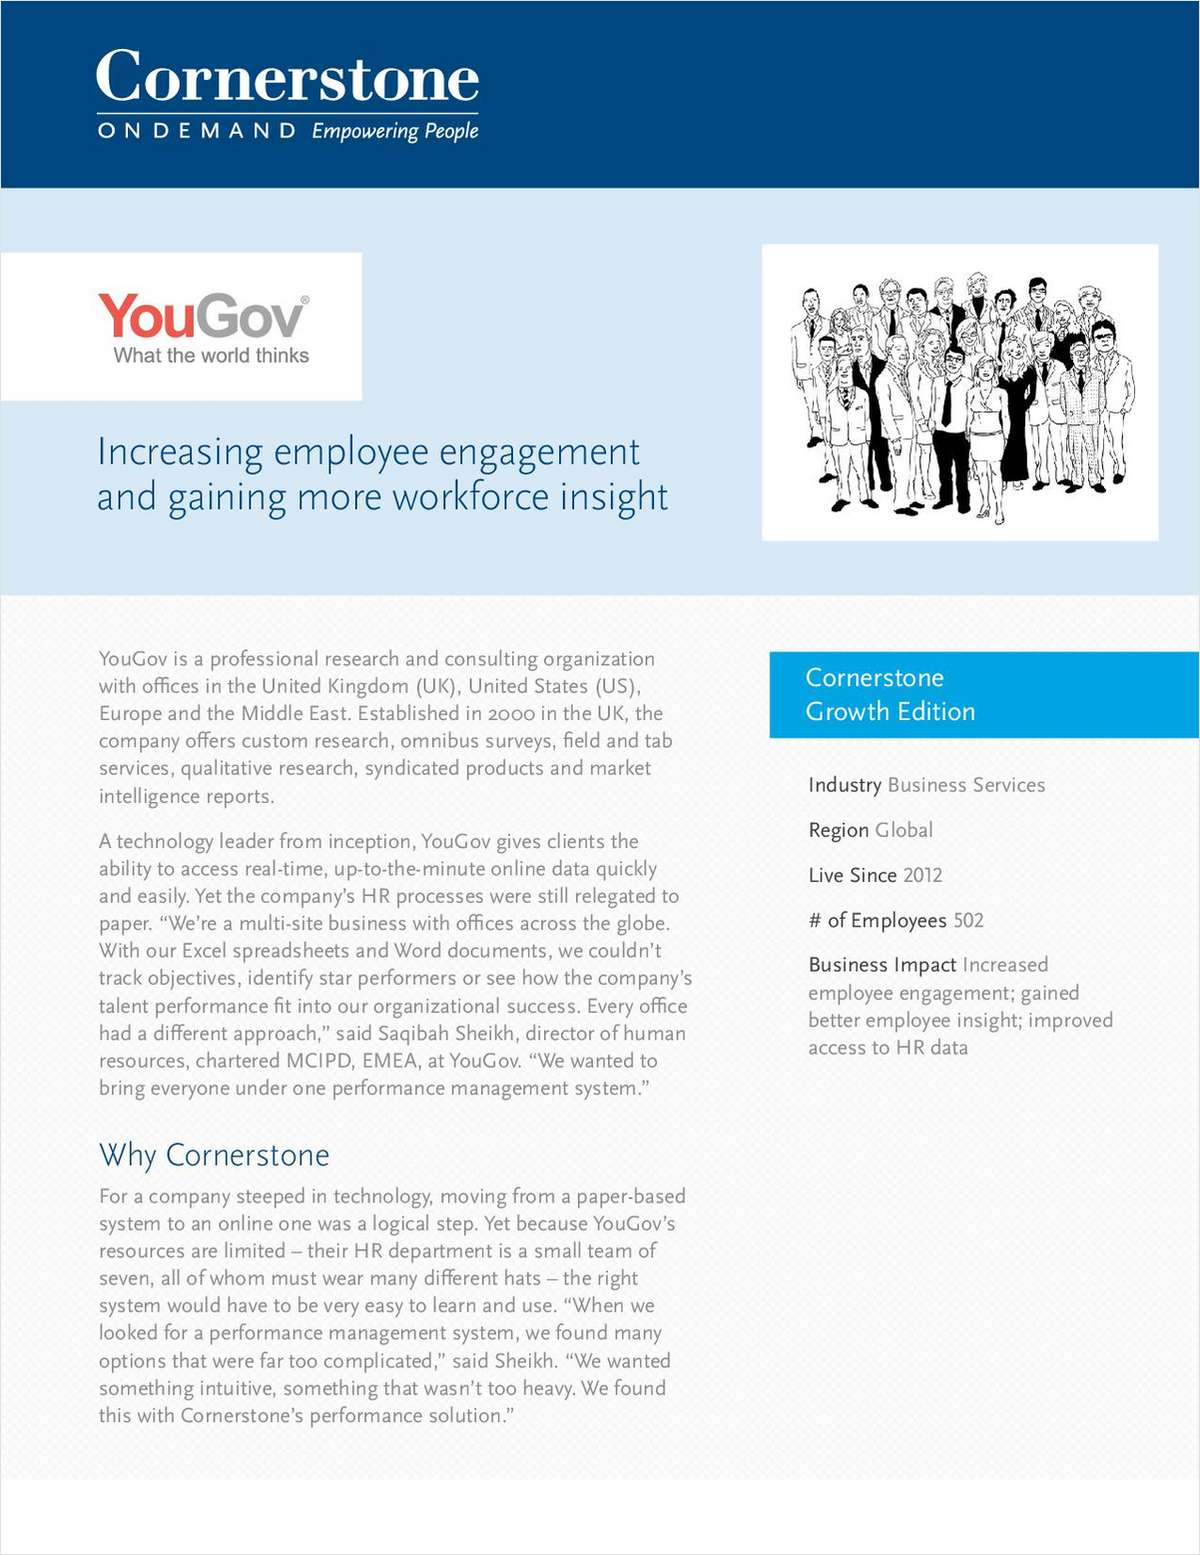 YouGov Case Study: Increasing Employee Engagement and Gaining More Workforce Insight